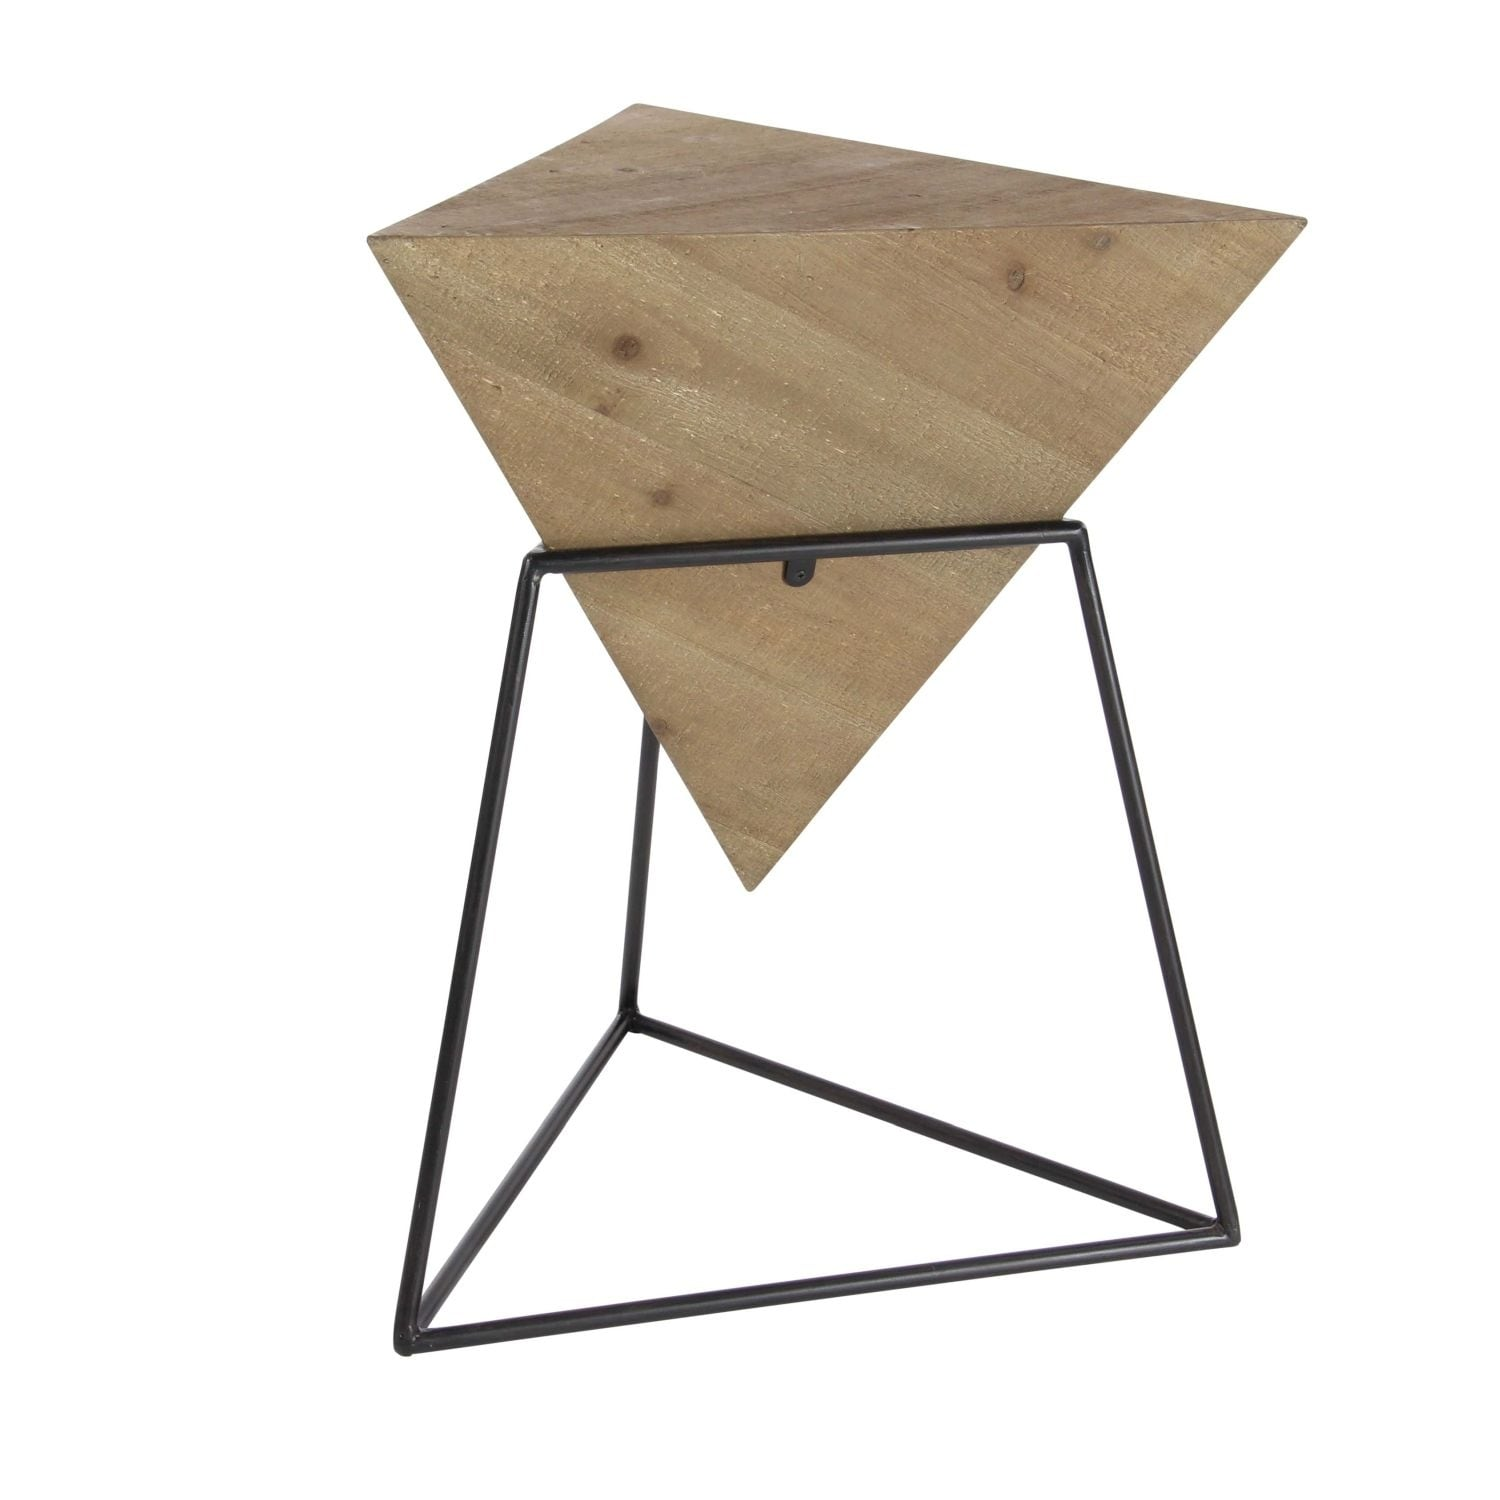 Studio 350 Wood Metal Triangle Table 20 Inches Wide 24 High Free Shipping Today 23495412